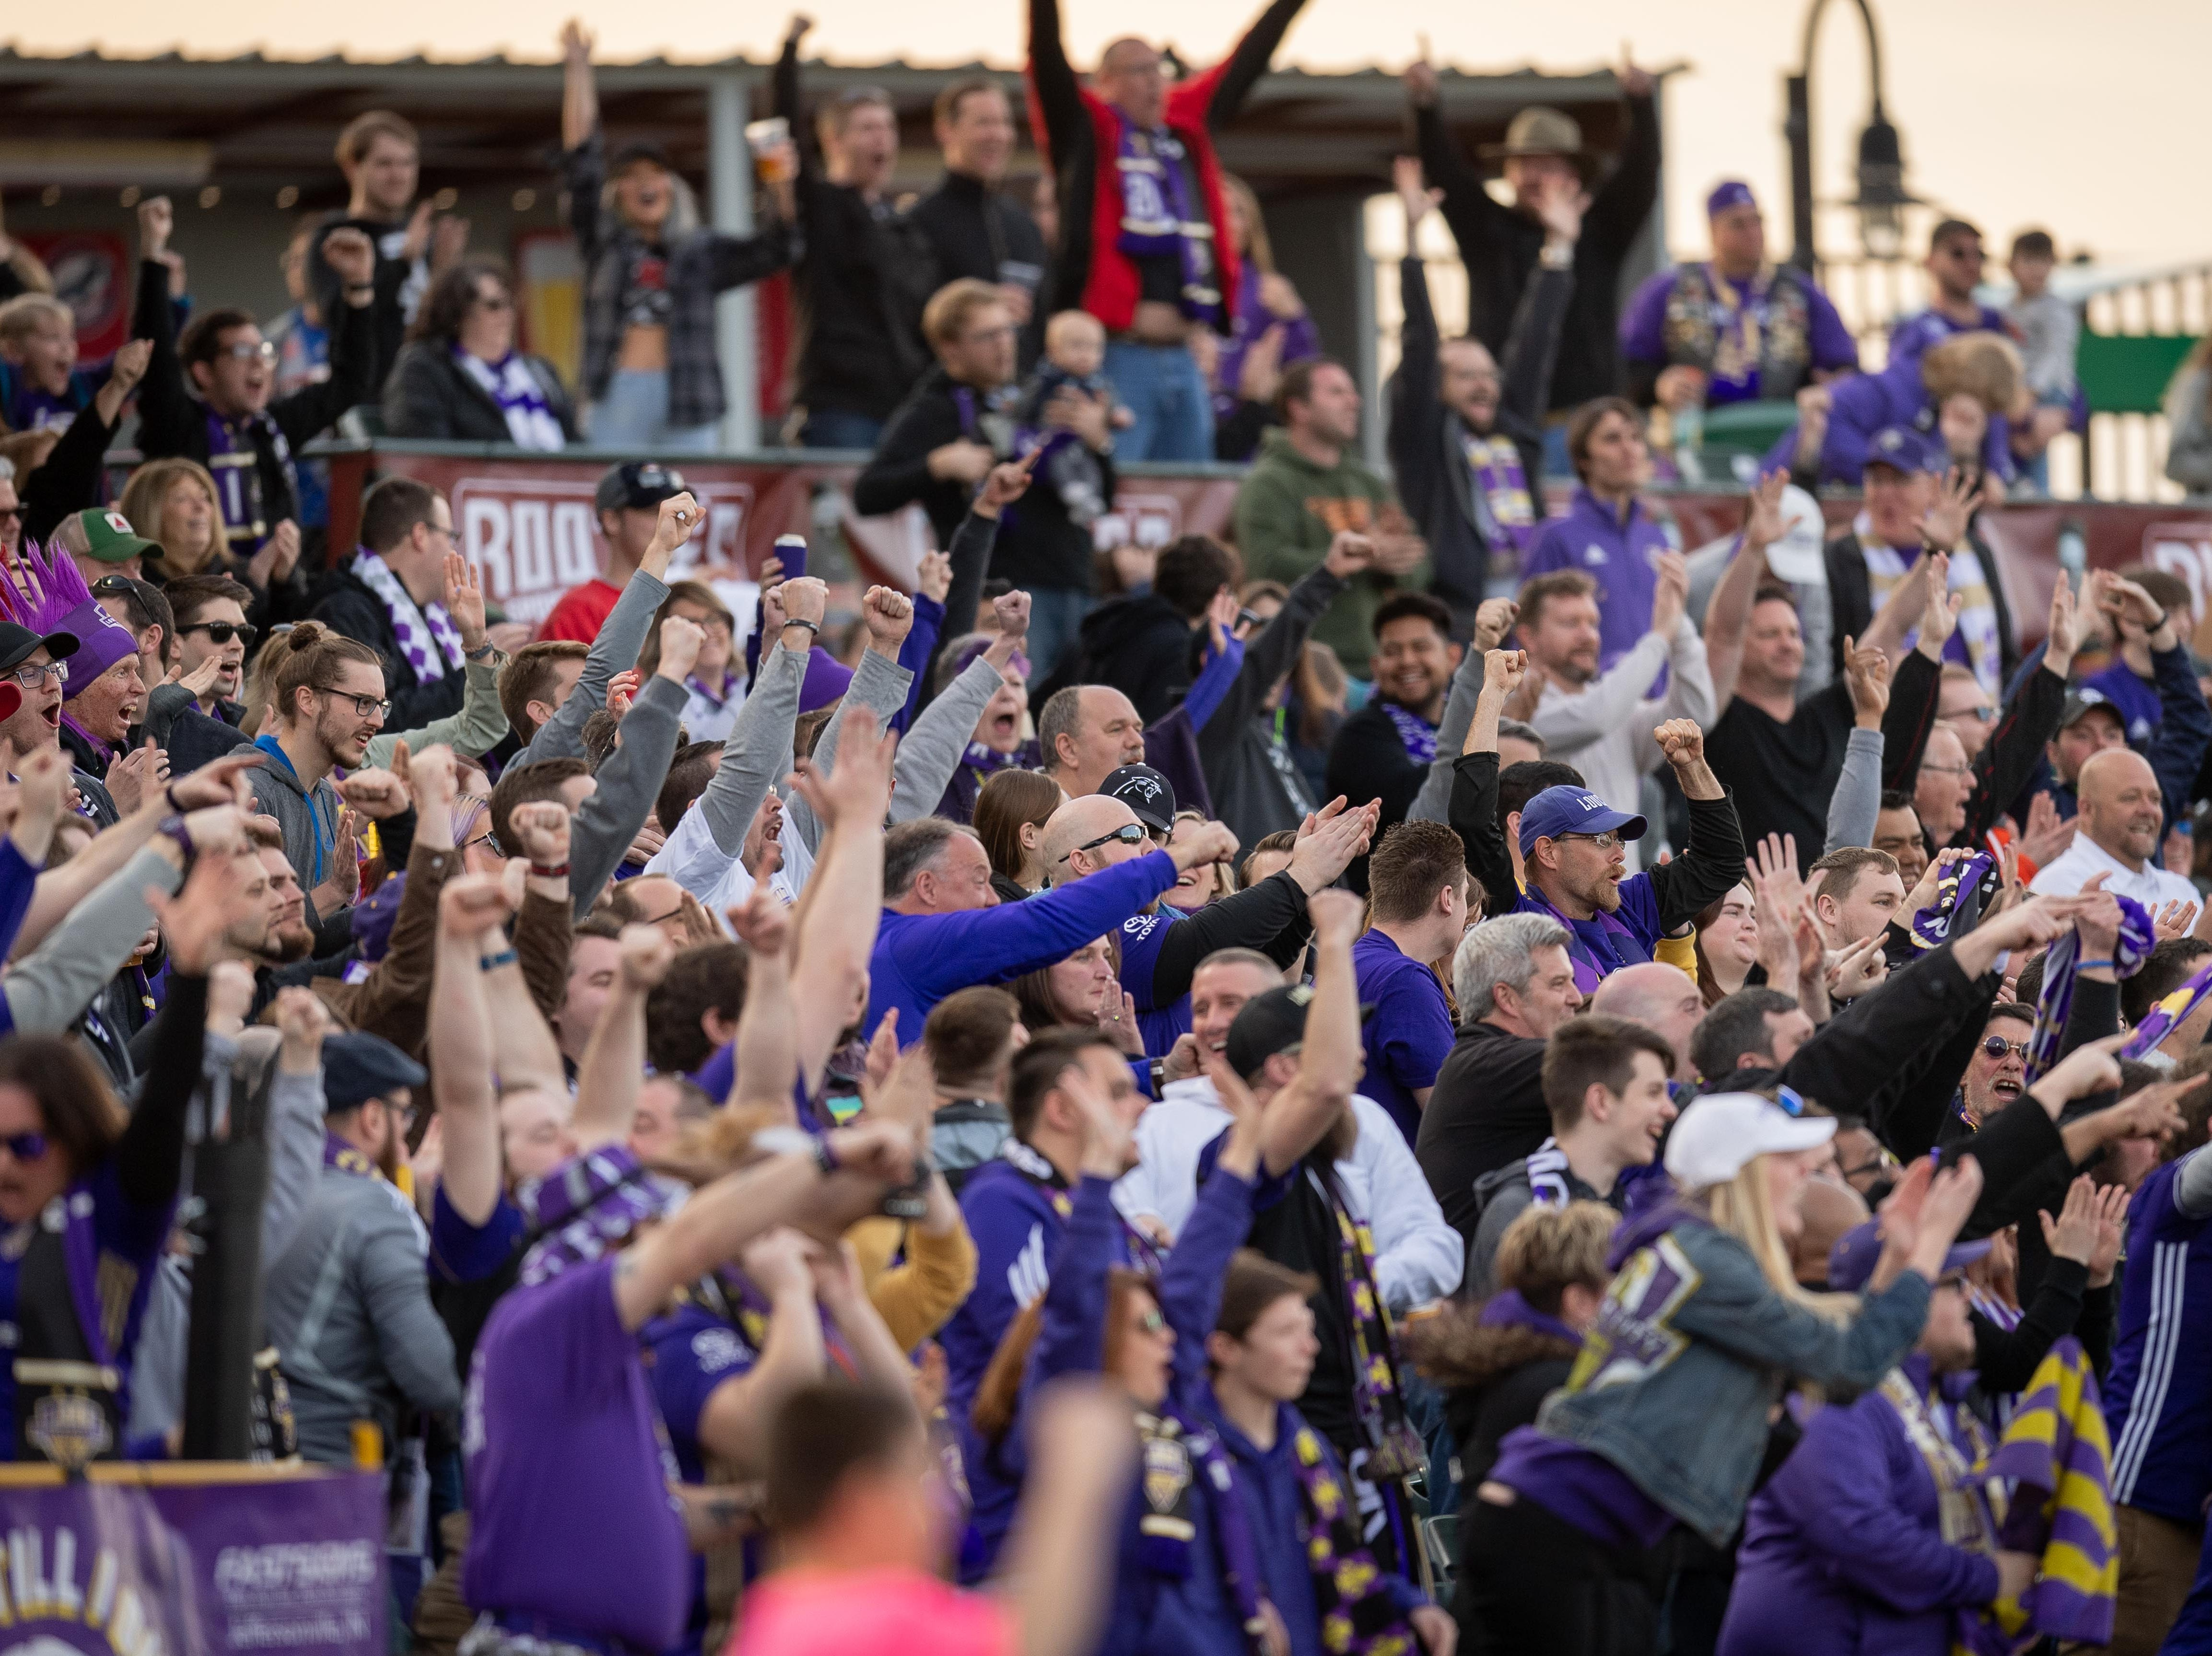 Louisville City FC fans celebrate after a goal during the season opening match in Louisville, Ky., Saturday, March 23, 2019.